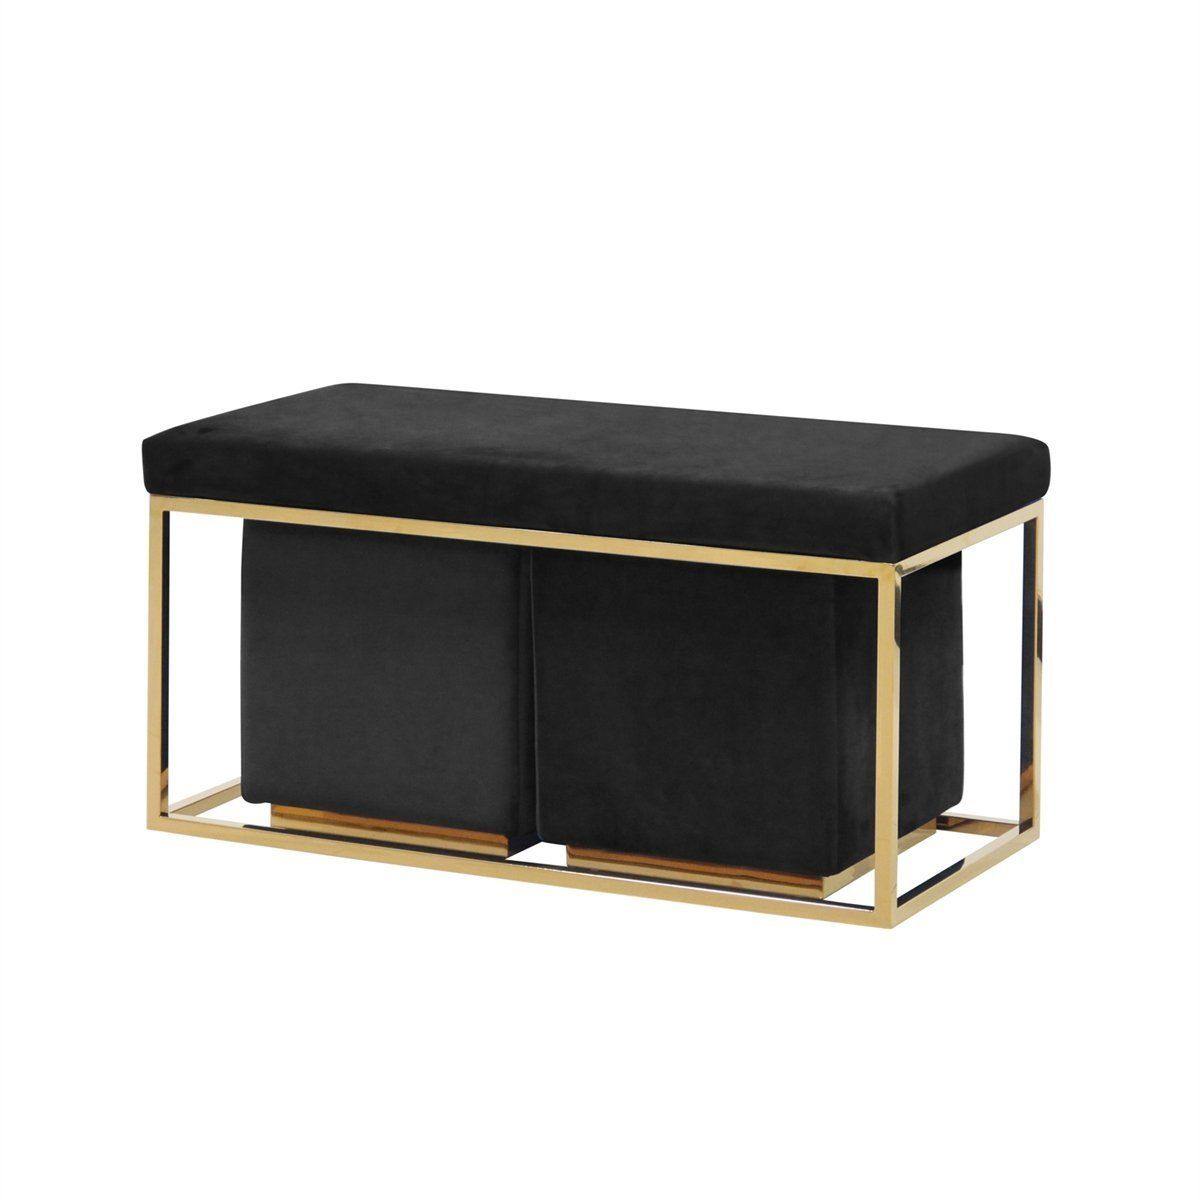 Elegant Set Of 3 Bench And Ottoman Black And Gold By